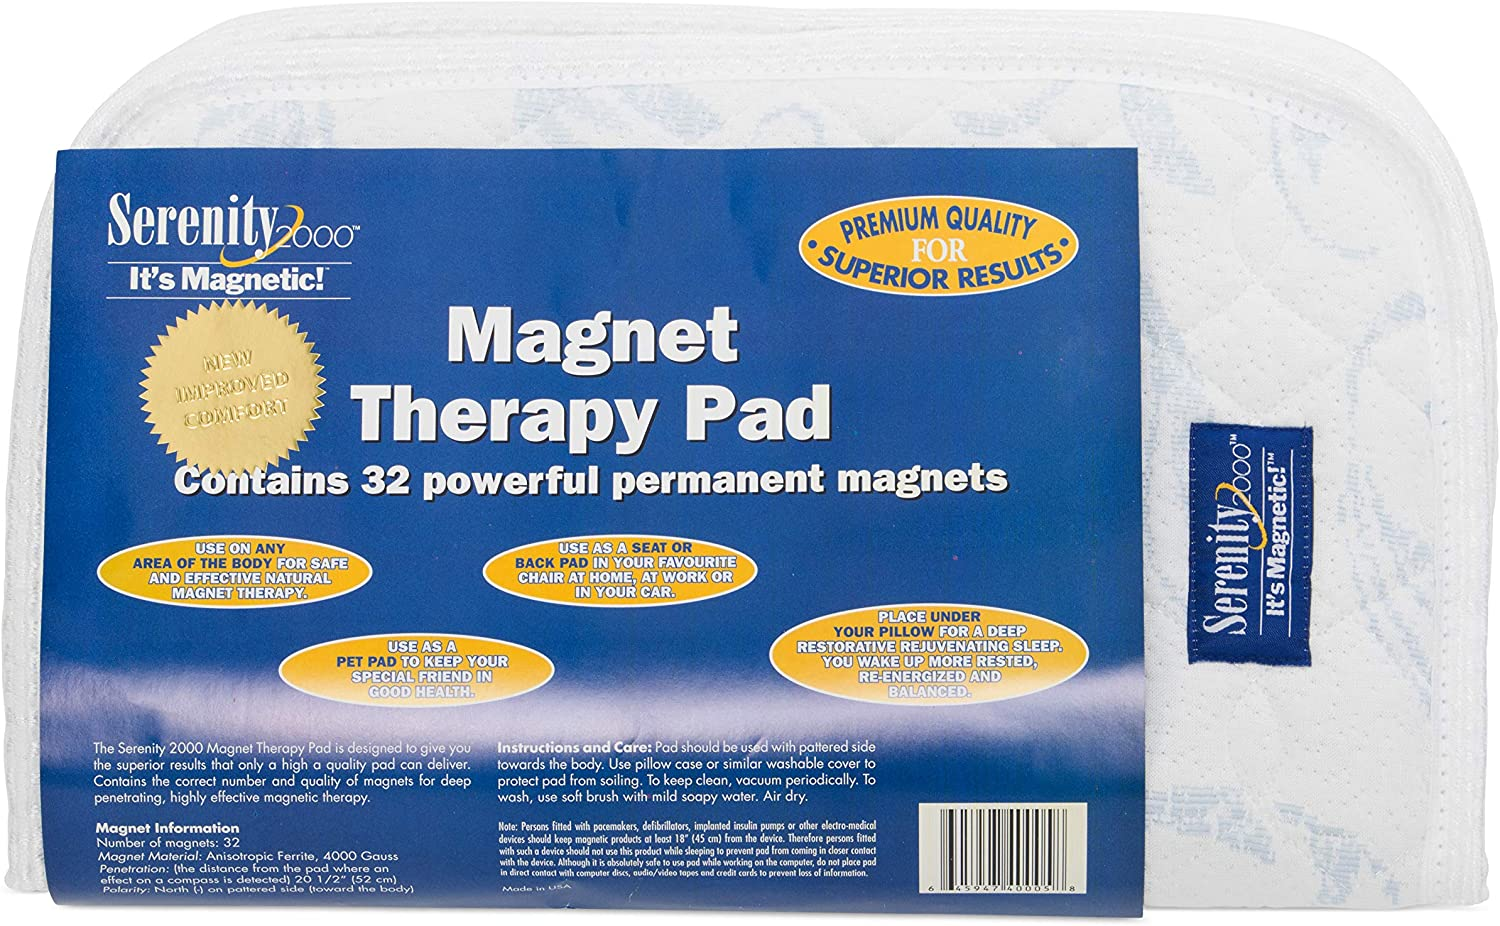 Serenity2000 Magnetic Vitality Pad for Improved Sleep and wellness